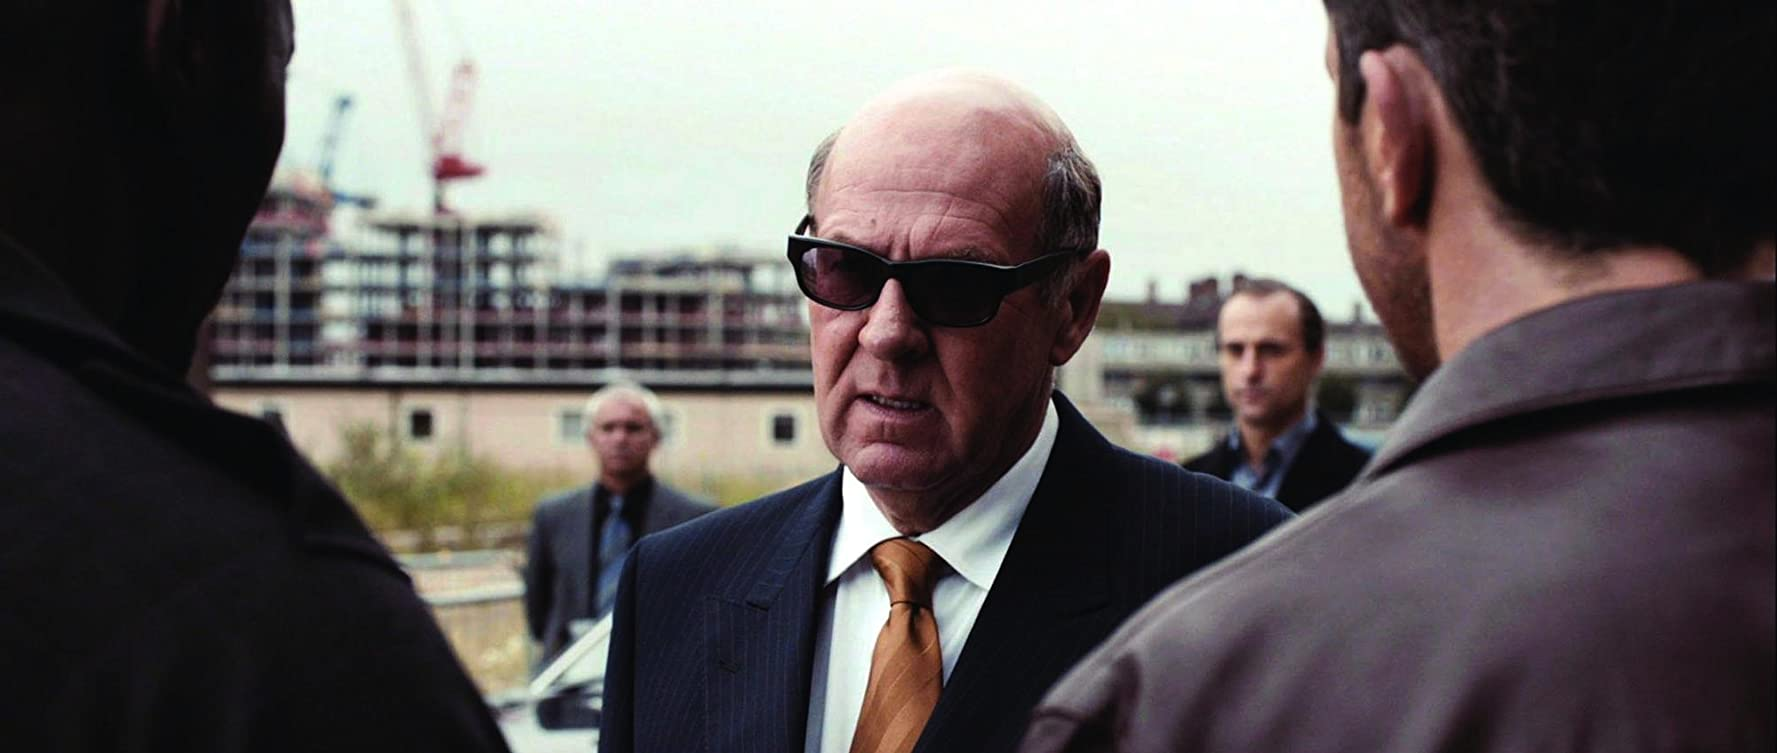 Tom Wilkinson in RocknRolla (2008)